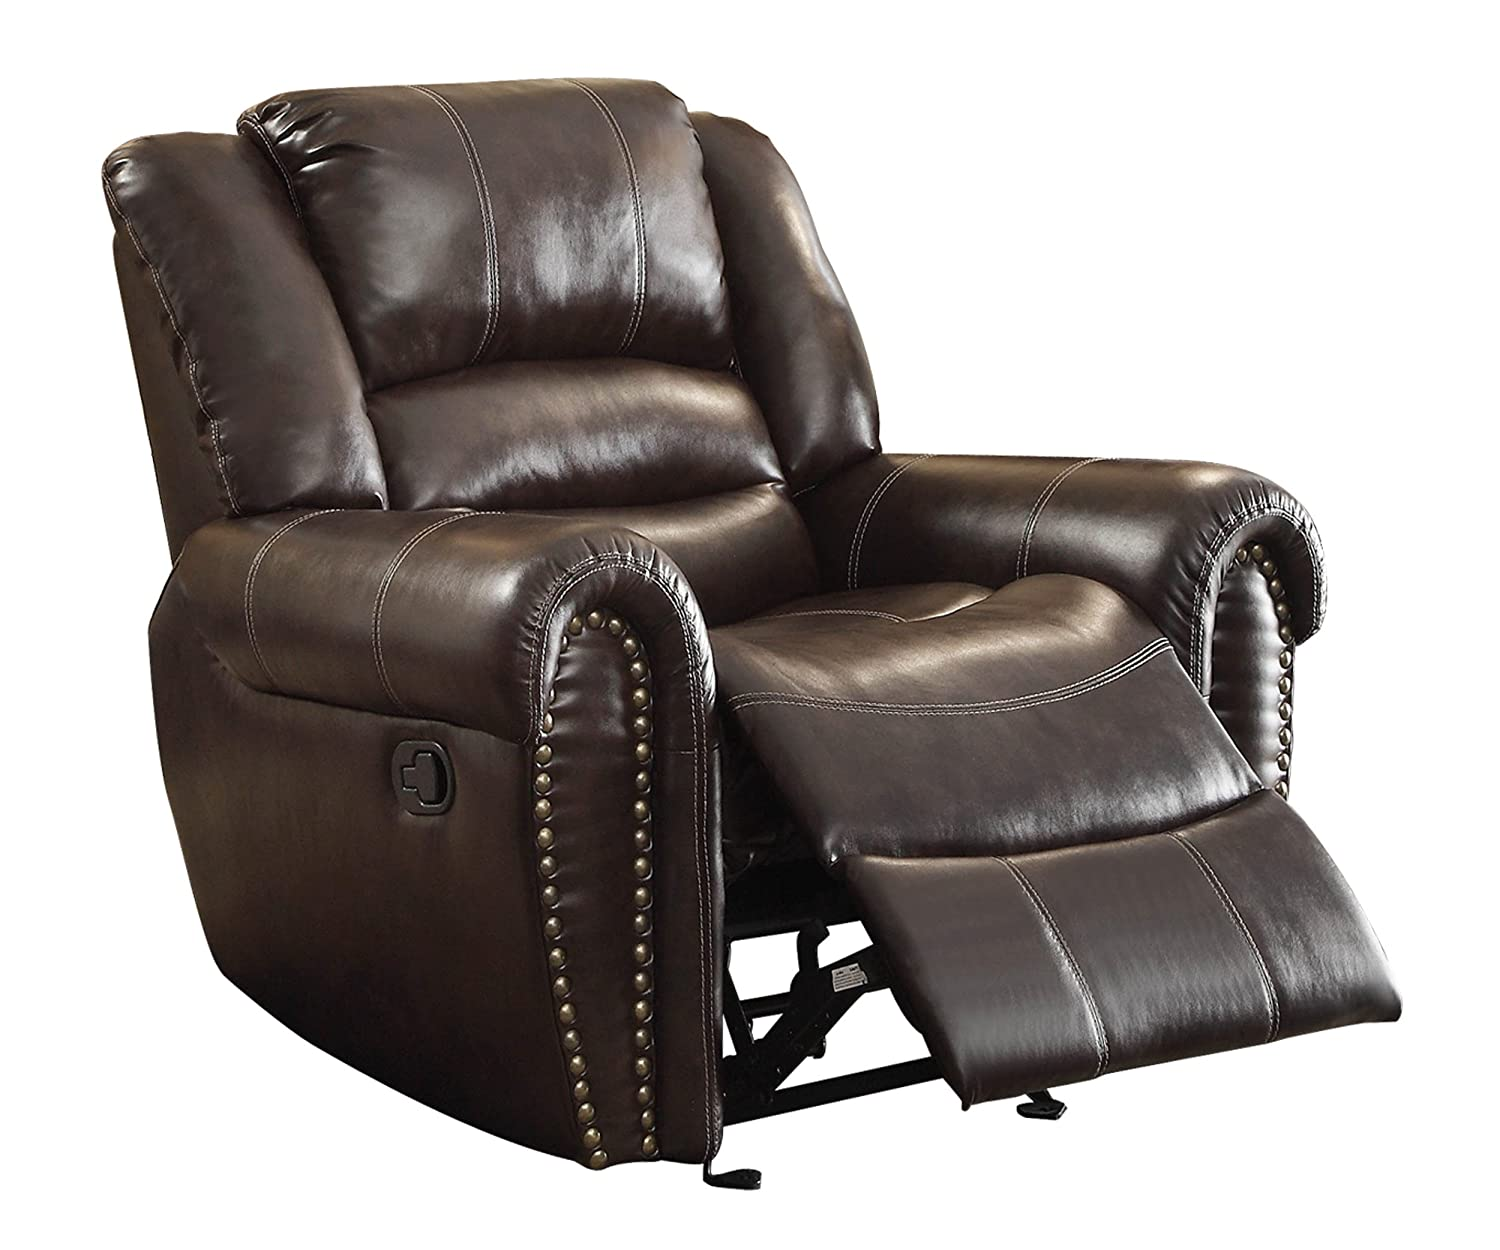 7. Homelegance 9668BRW-1 Glider Reclining Chair, Brown Bonded Leather